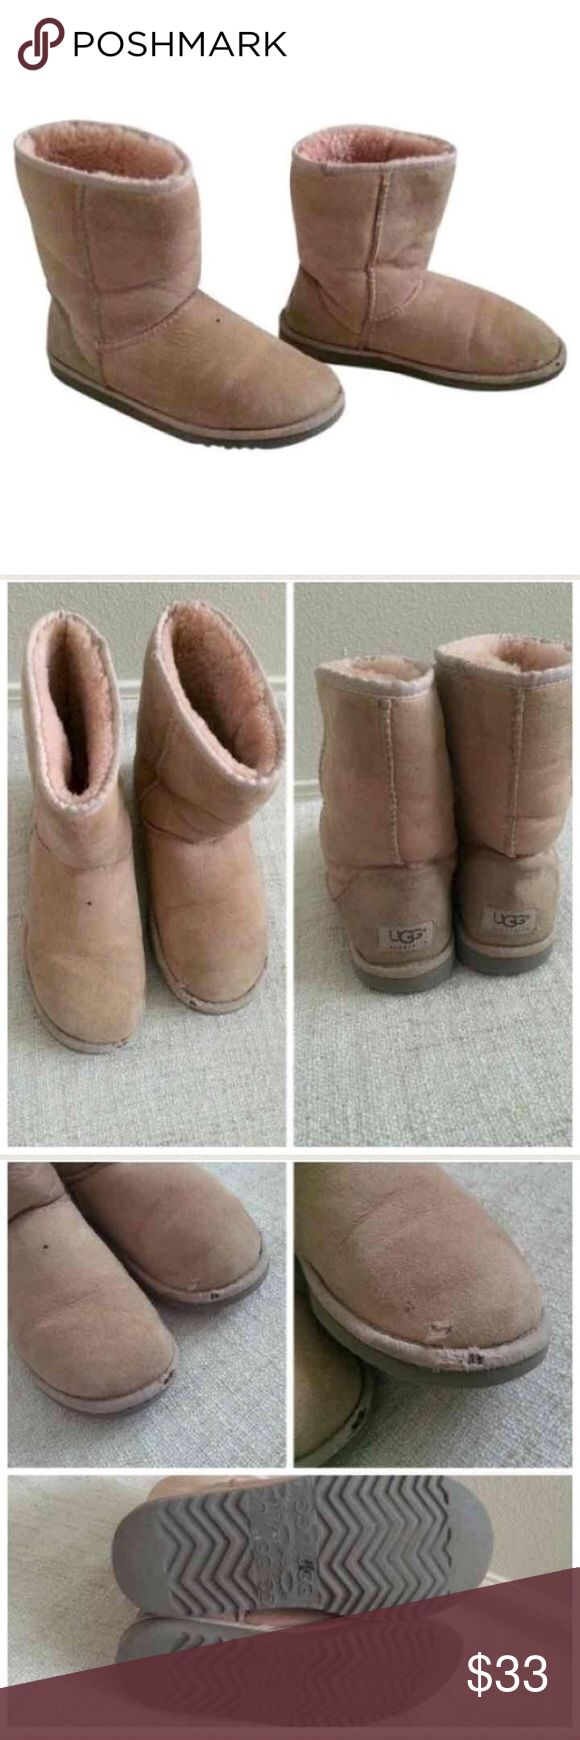 Ugg light pink women's boots size W6 Good used condition. Size 6 Super warm  boots with real sheep wool , good used condition, has little stains and scratches It has a small hole ,Water can be held,  you can see on pictures .  thick fur  waterproof warm boots  .                                                                 Thank you for looking and please feel free to view my other items :) UGG Shoes Ankle Boots & Booties